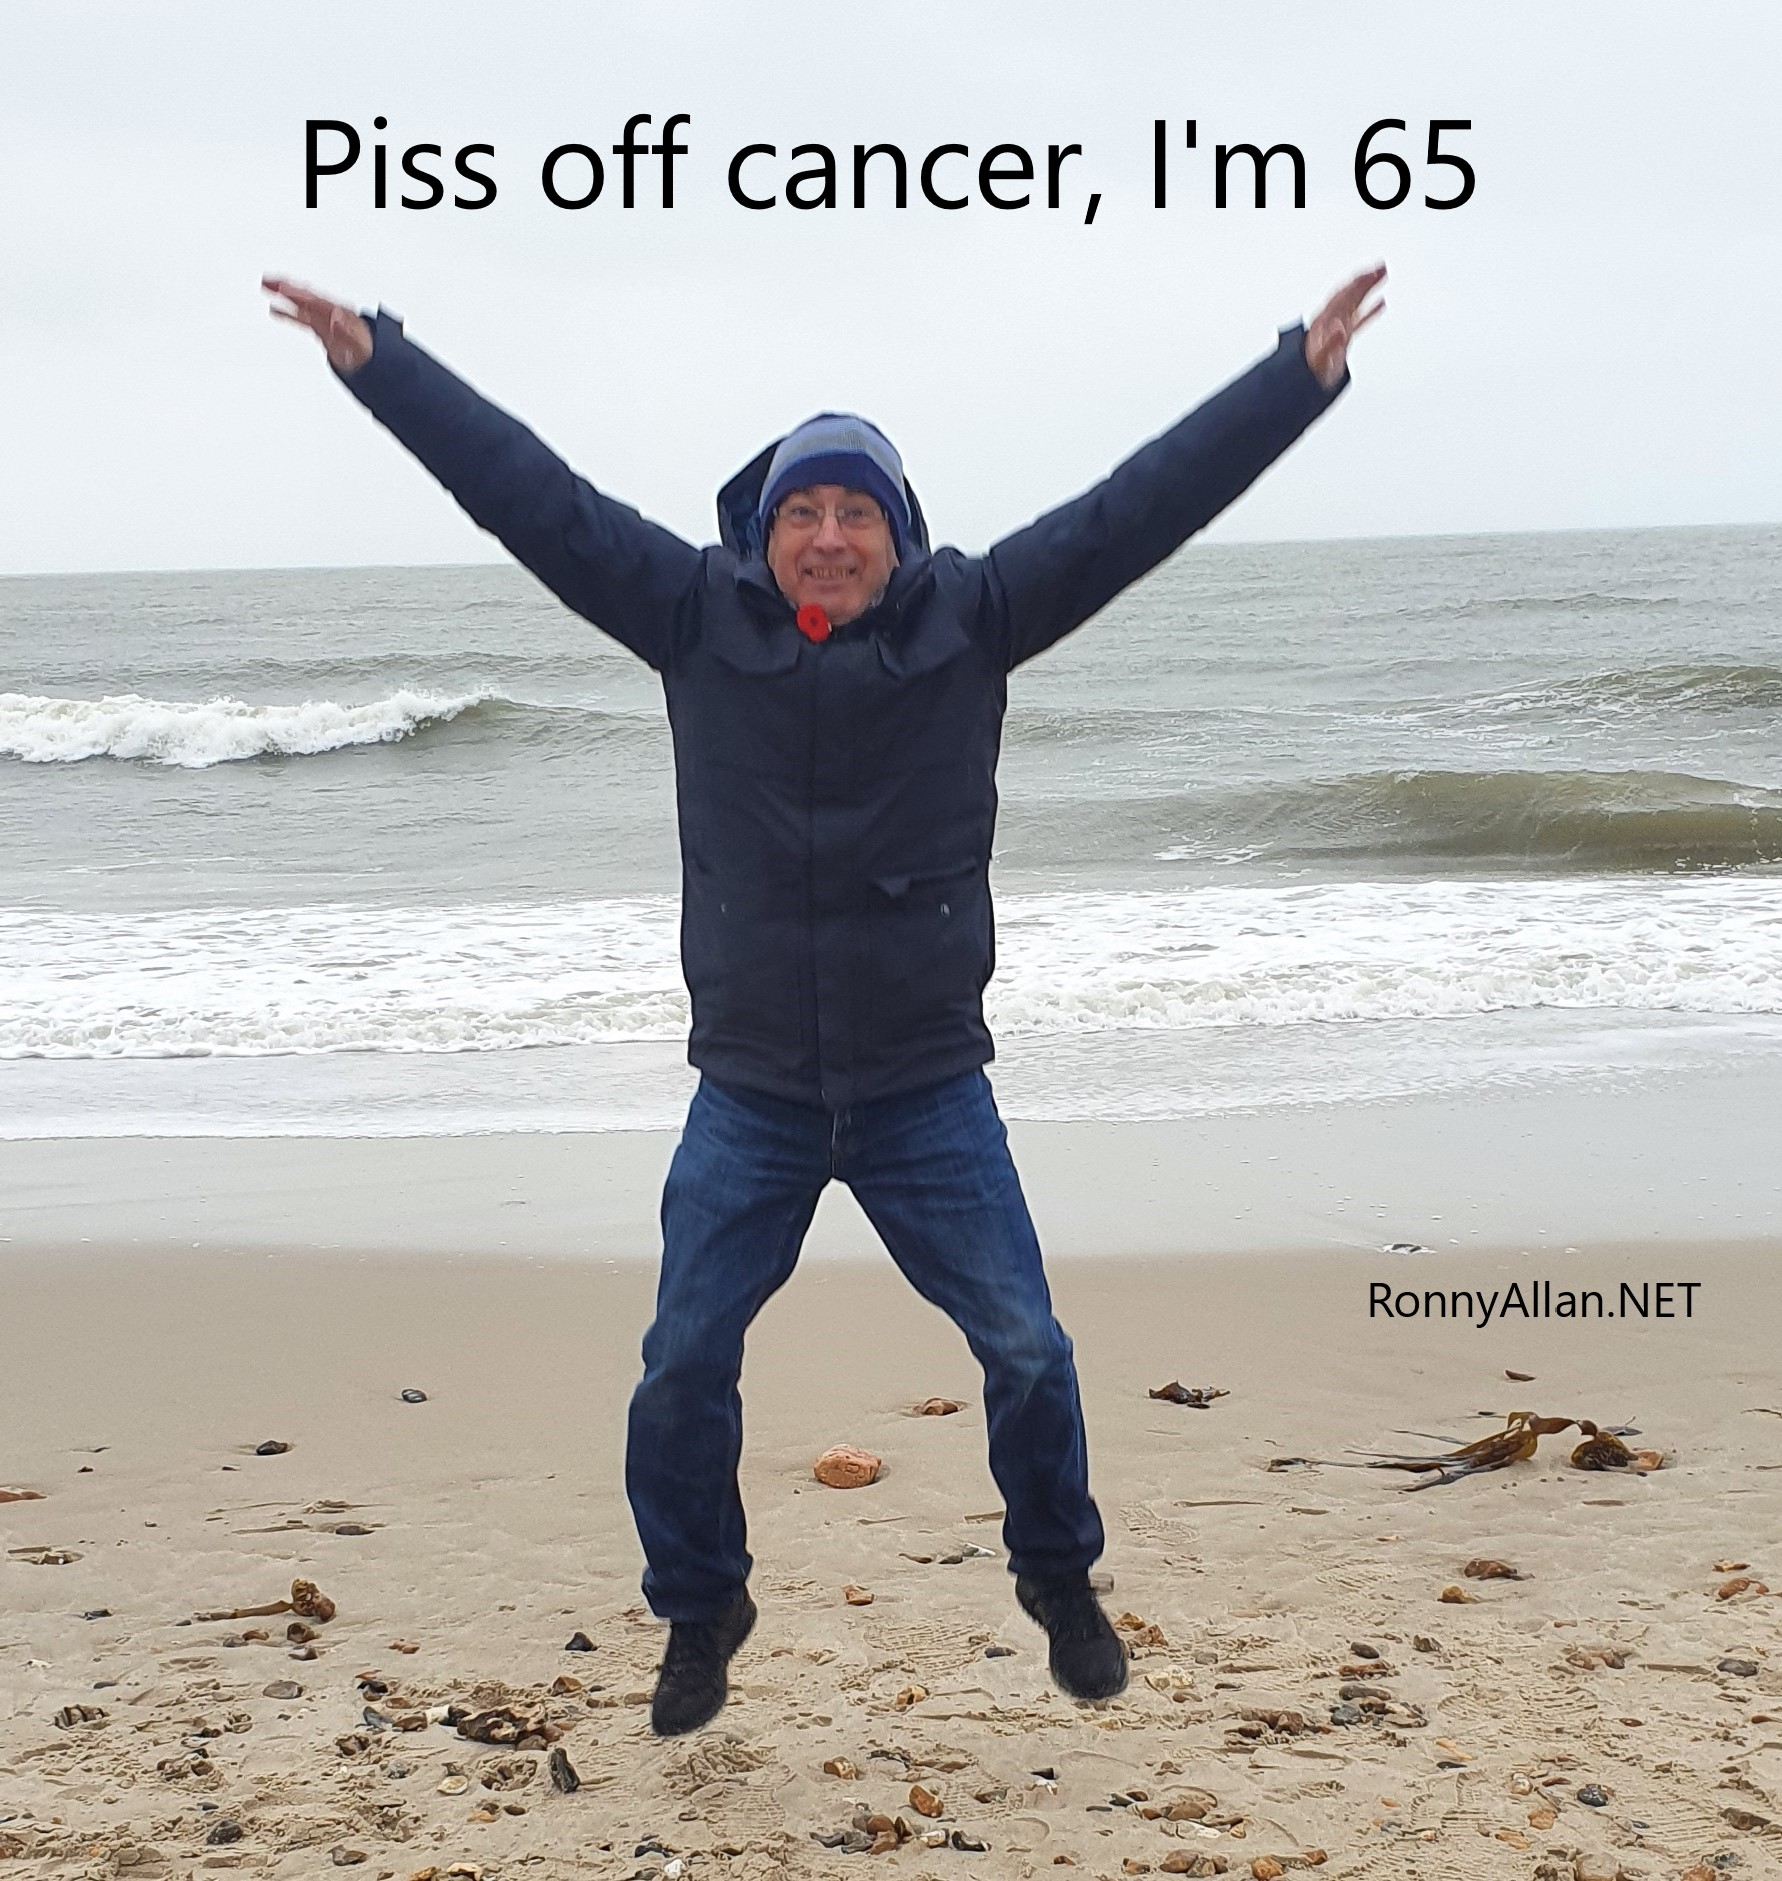 Piss off cancer – I'm 65